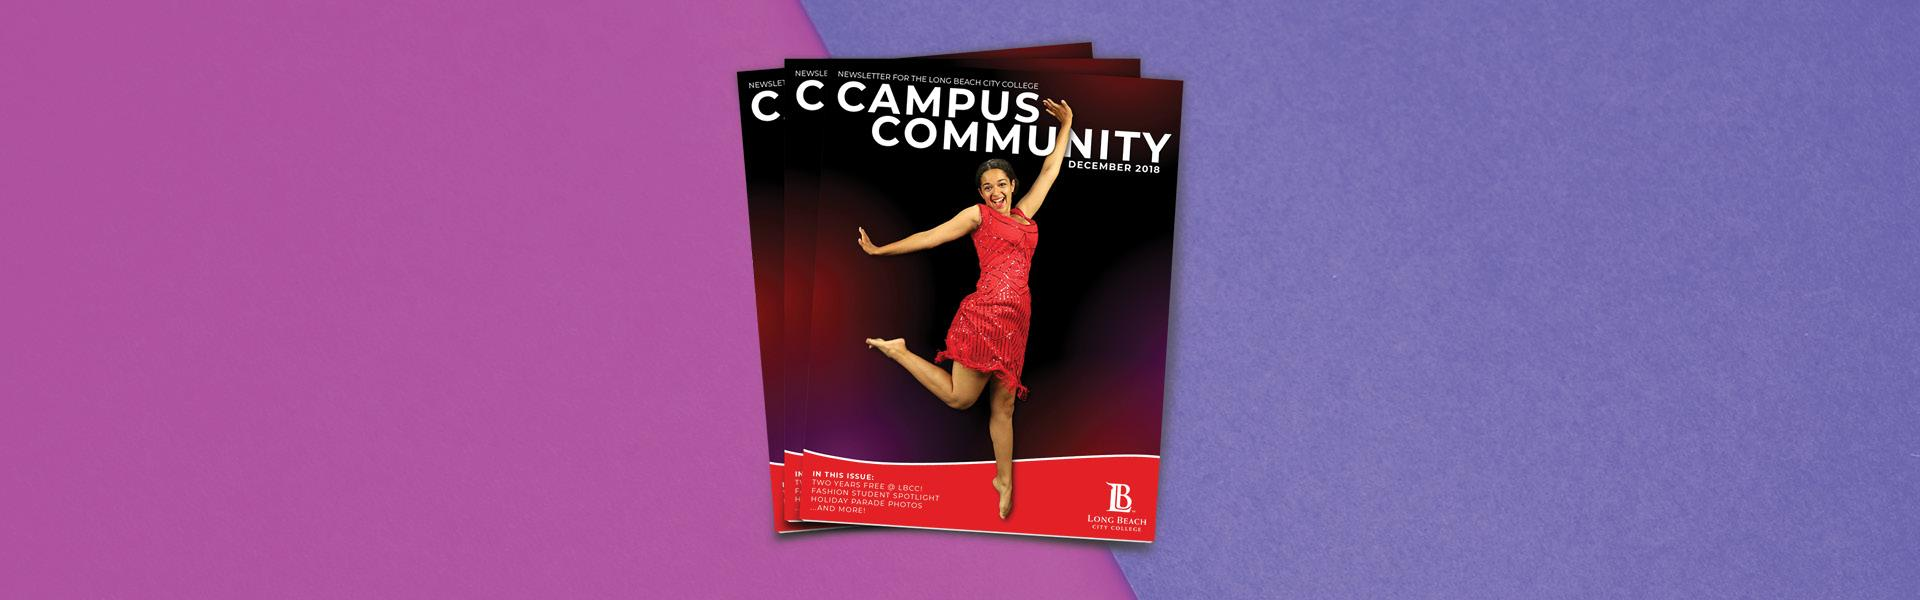 the cover of the Dec. 2018 Campus Community Newsletter